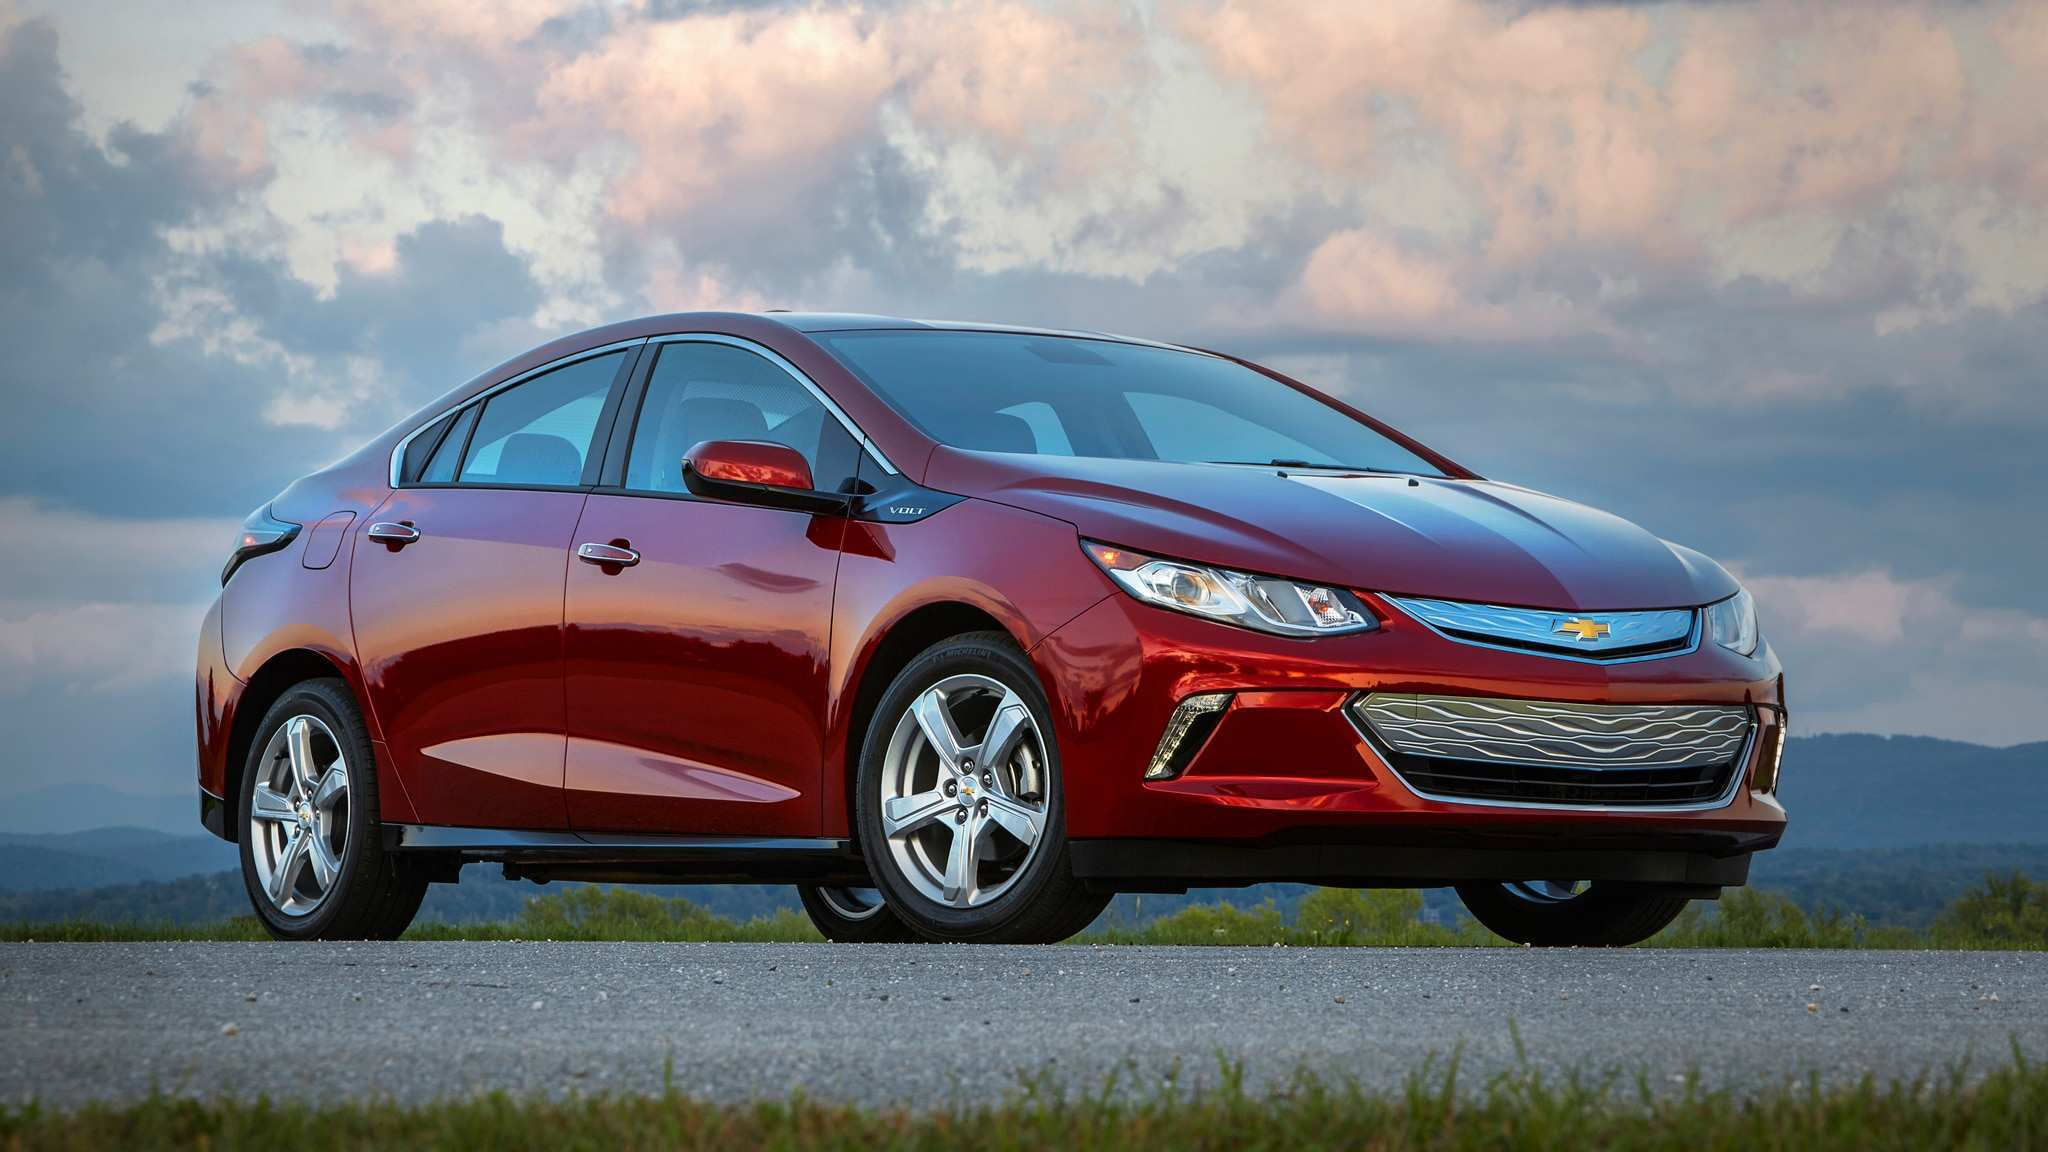 95 All New 2020 Chevrolet Volt Redesign